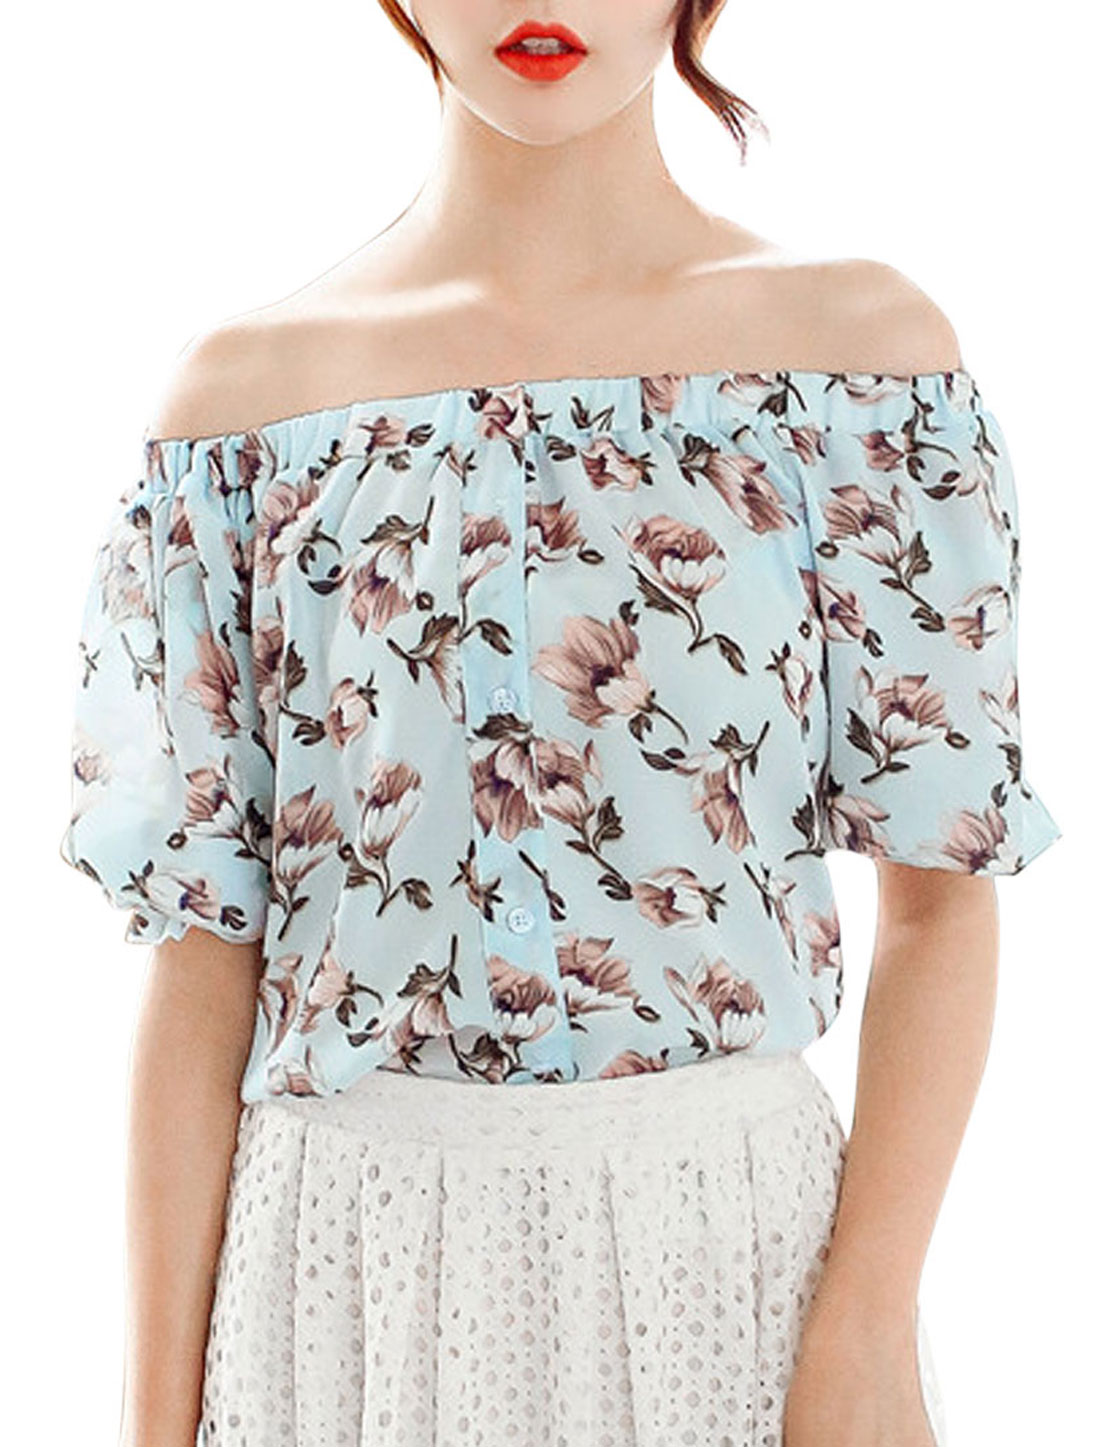 Woman Floral Prints Off The Shoulders Short Sleeves Chiffon Top Light Blue XS